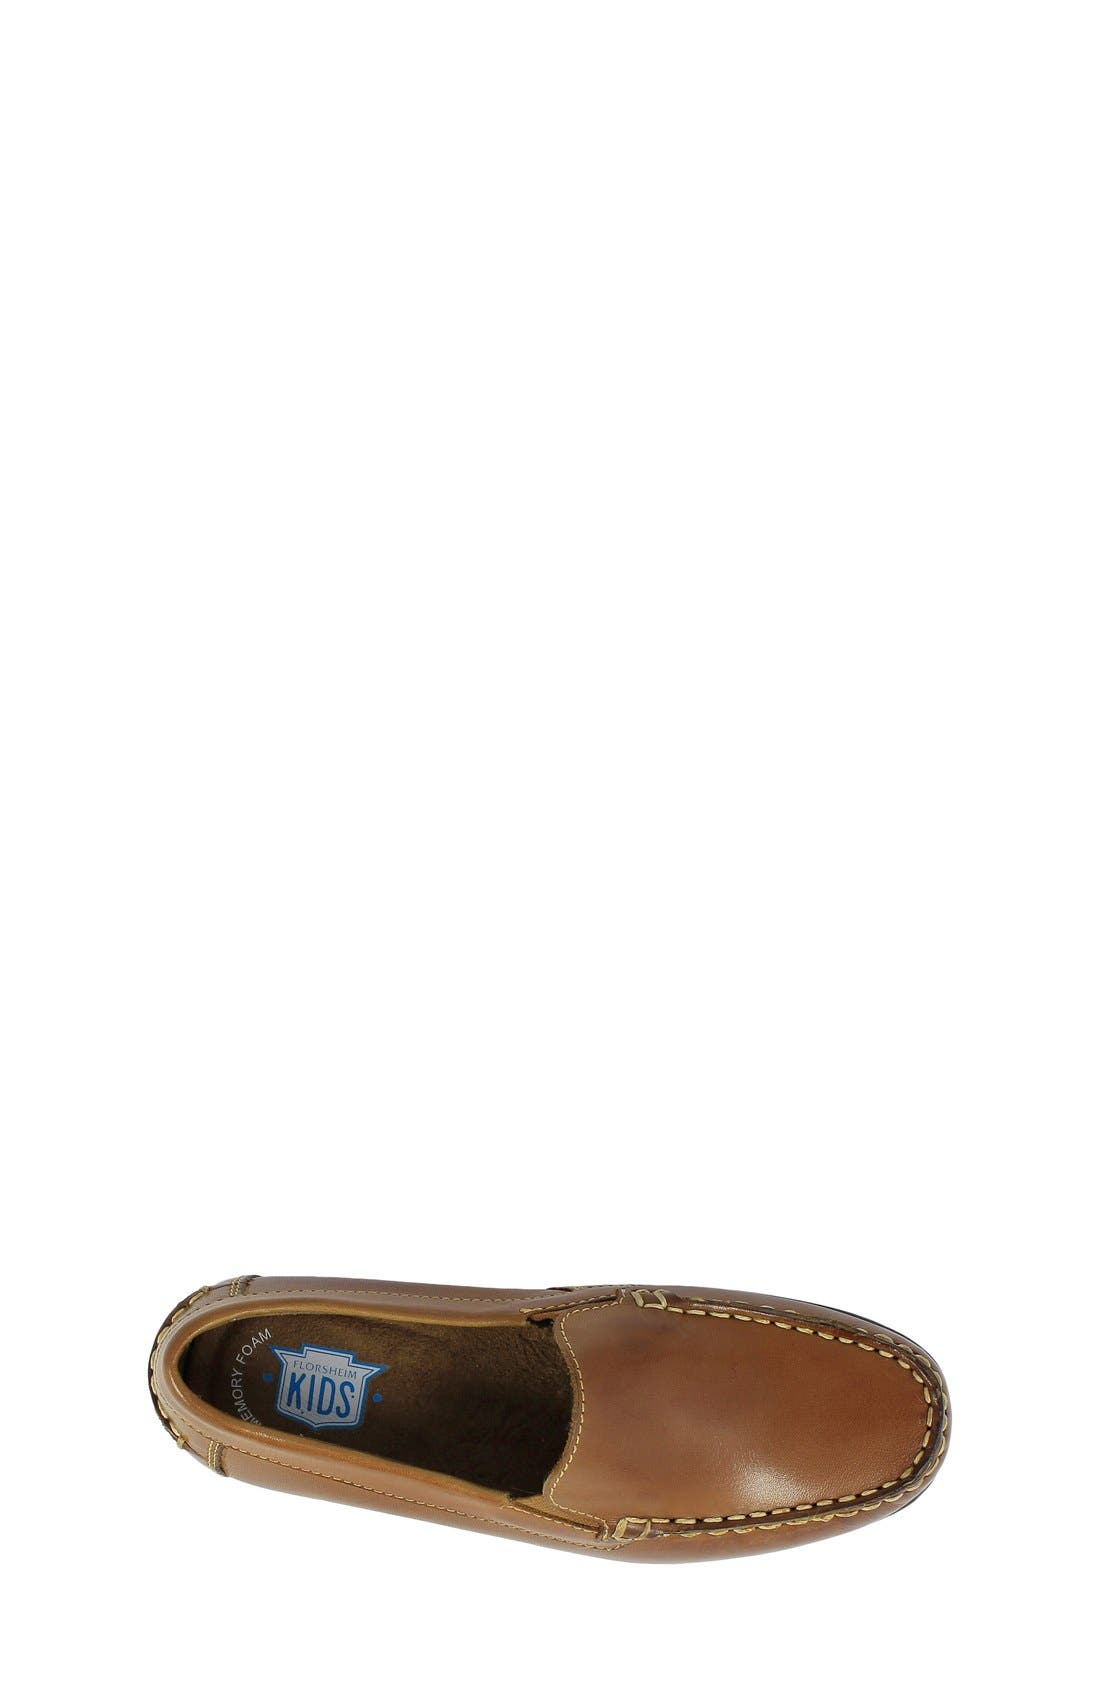 'Jasper - Venetian Jr.' Loafer,                             Alternate thumbnail 3, color,                             Saddle Tan Leather